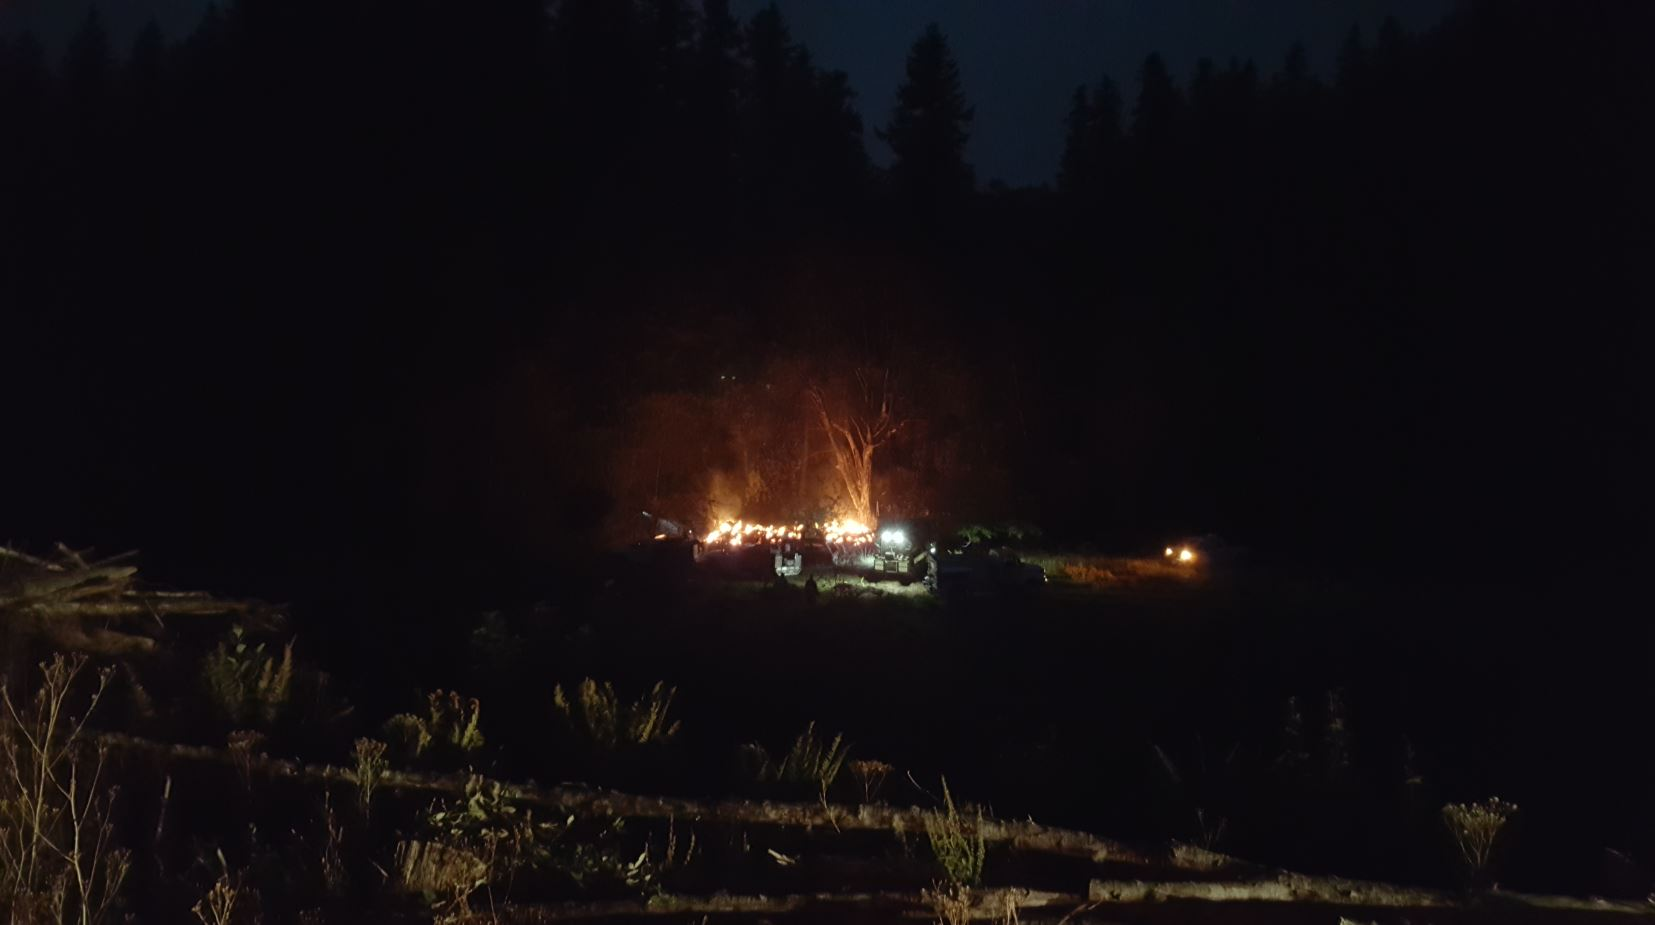 Three men were arrested in Douglas County following an investigation into a structure fire in an unoccupied building in a remote area of the North Fork Smith River on Sep. 2, 2017. (Oregon State Police photo)